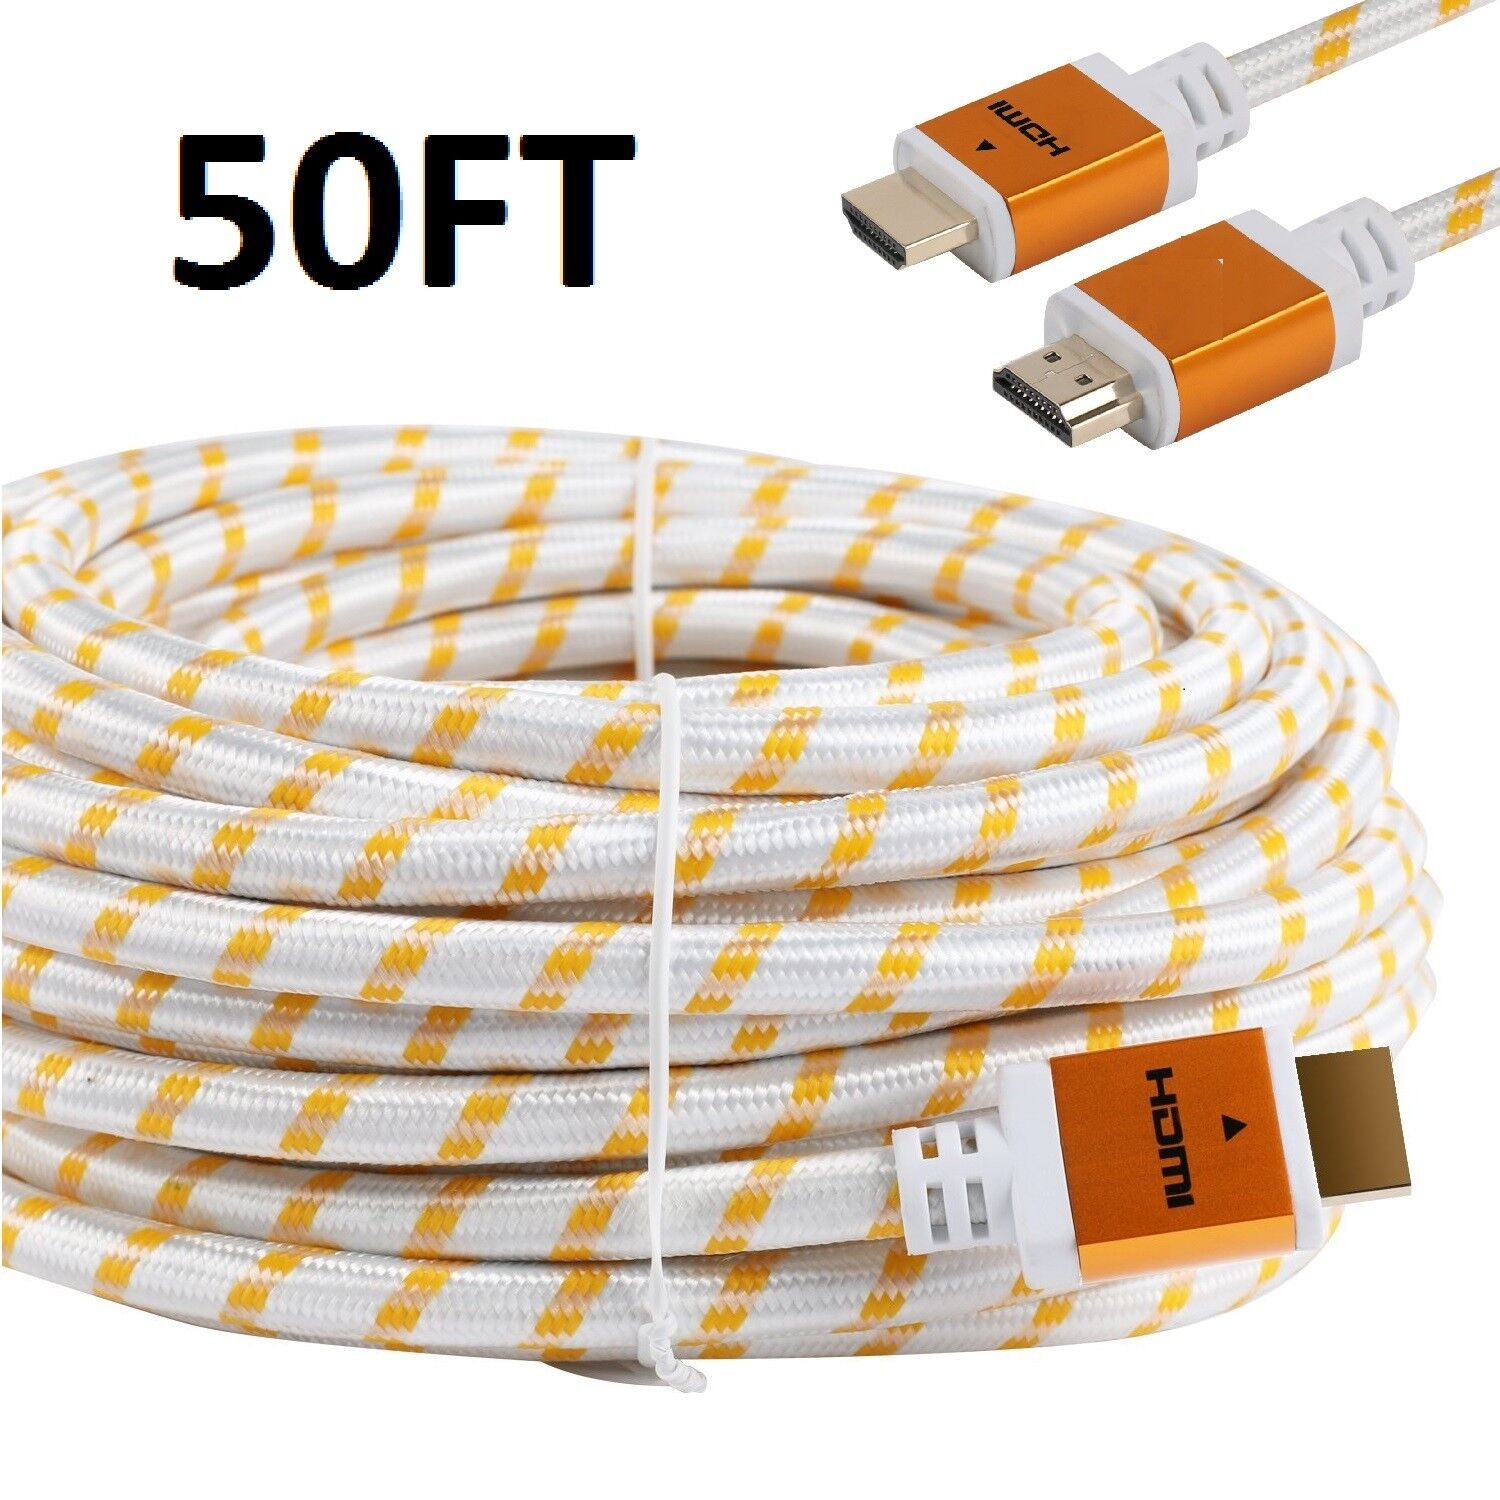 PREMIUM HDMI CABLE 50FT For 3D DVD PS4 HDTV XBOX LCD HD TV 1080P v1.4 White US Consumer Electronics